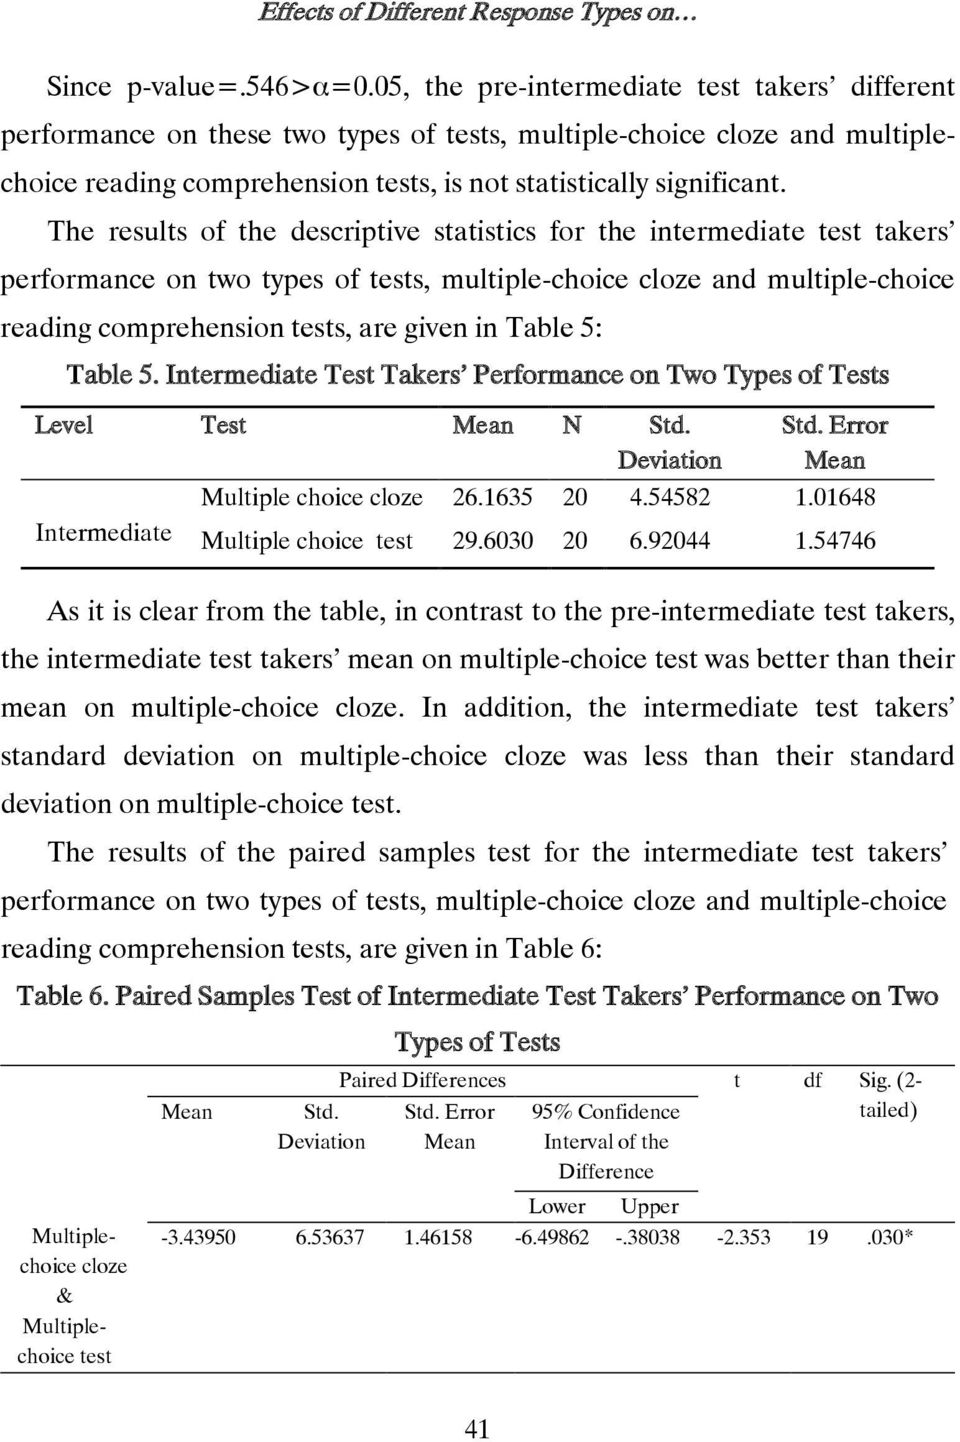 The results of the descriptive statistics for the intermediate test takers performance on two types of tests, multiple-choice cloze and multiple-choice reading comprehension tests, are given in Table